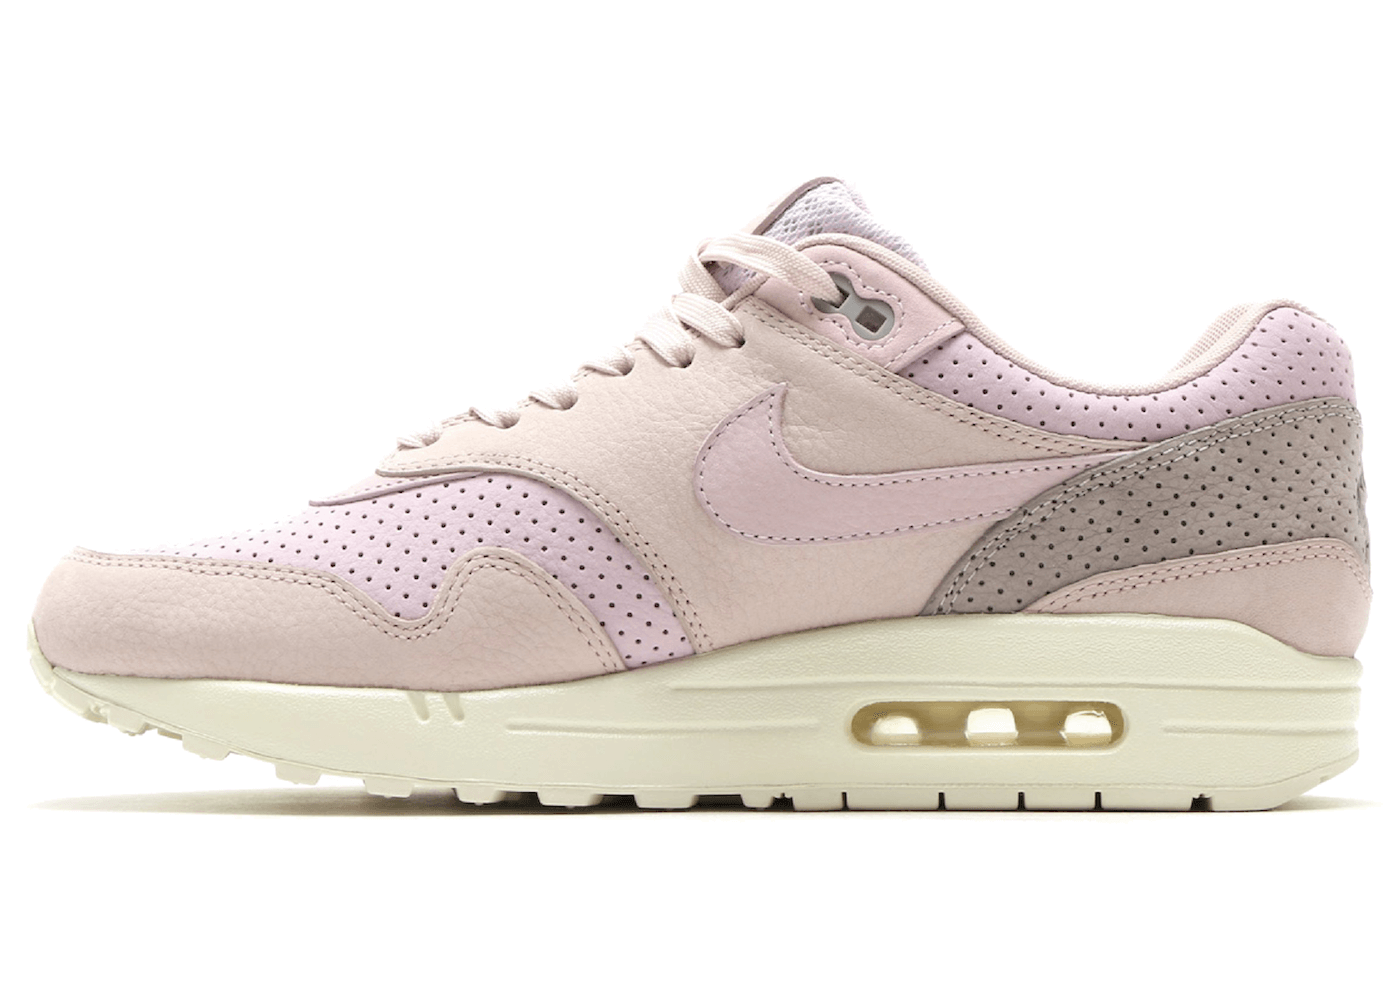 Air Max 1 Pinnacle Arctic Pinkの写真